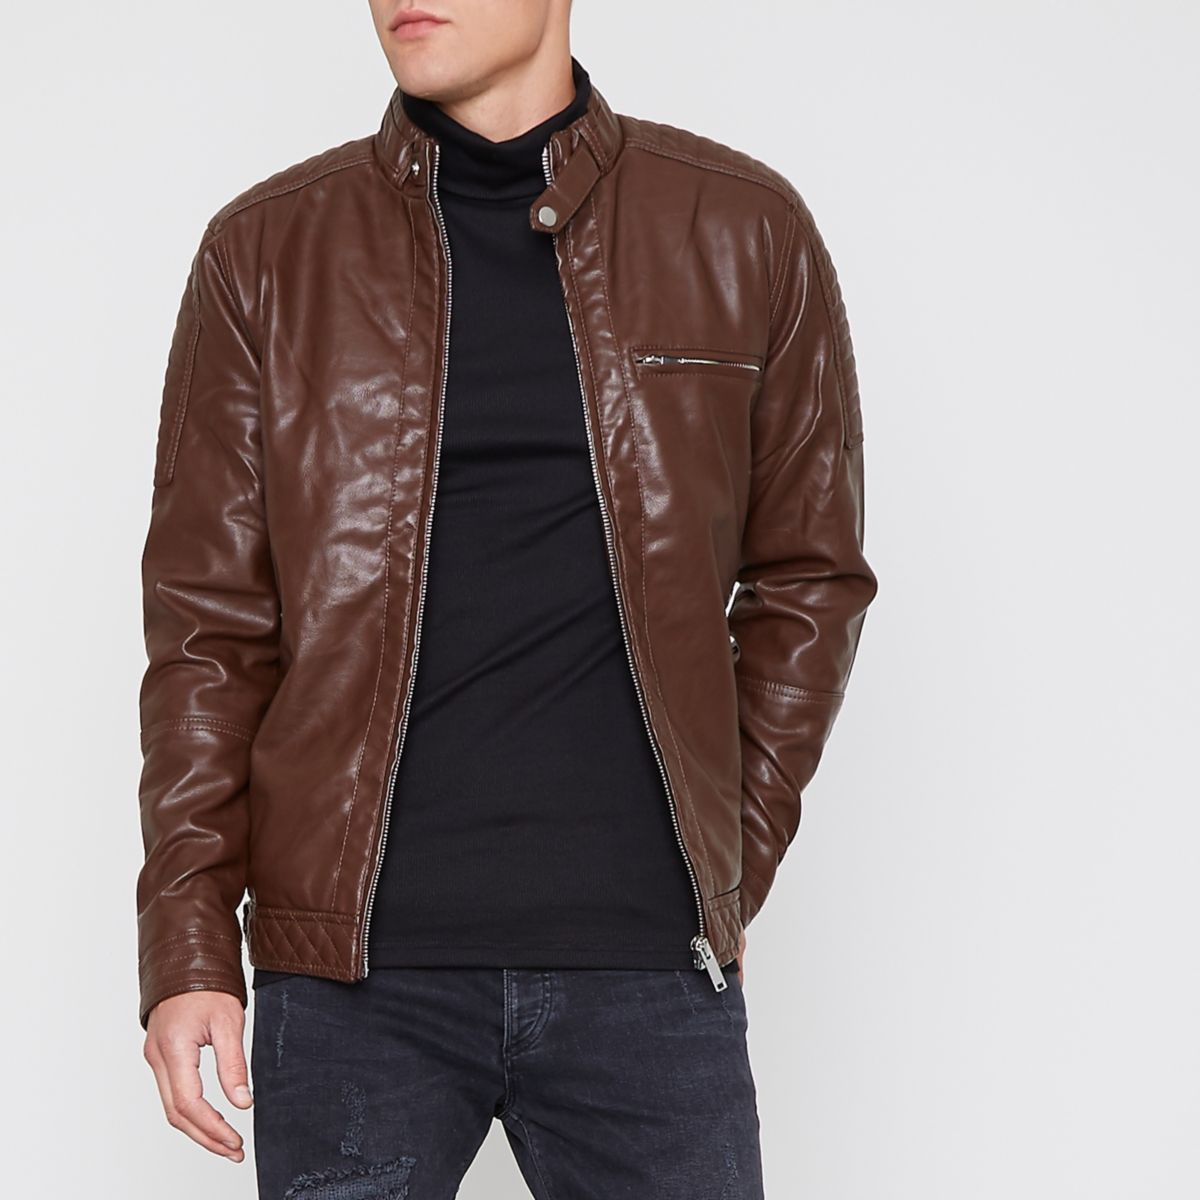 Dark brown faux leather racer jacket - Jackets - Coats & Jackets - men